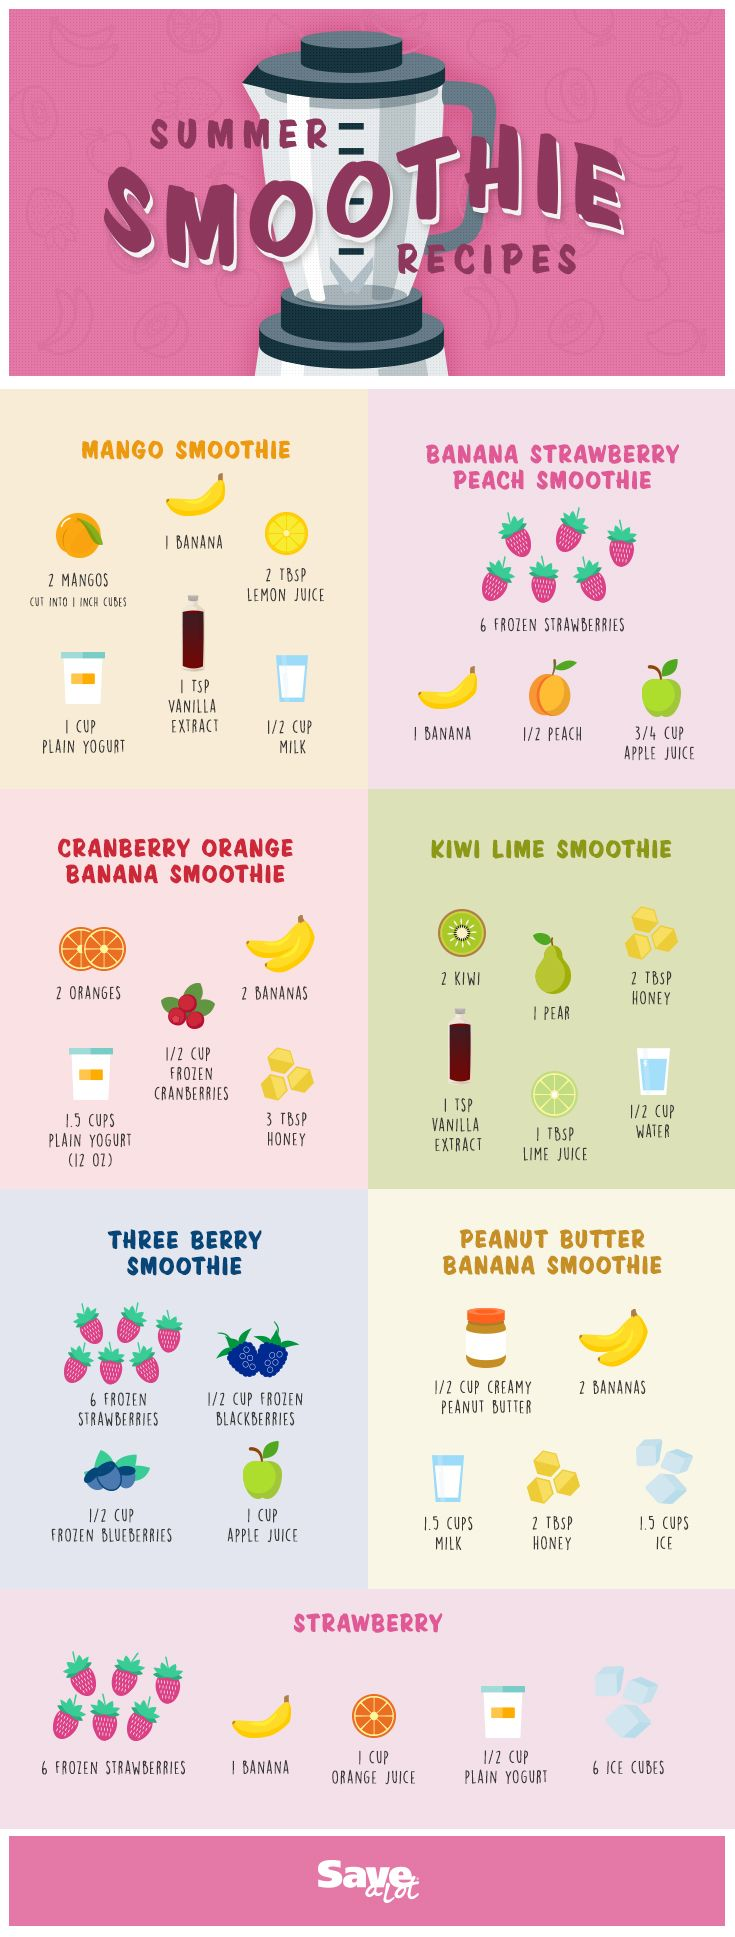 Smoothie Ideas   EASY   Summer Smoothie   Healthy Smoothies   Smoothie Packs   MakeAHead Smoothies   savealot savealotinsiders is part of Smoothie recipes -